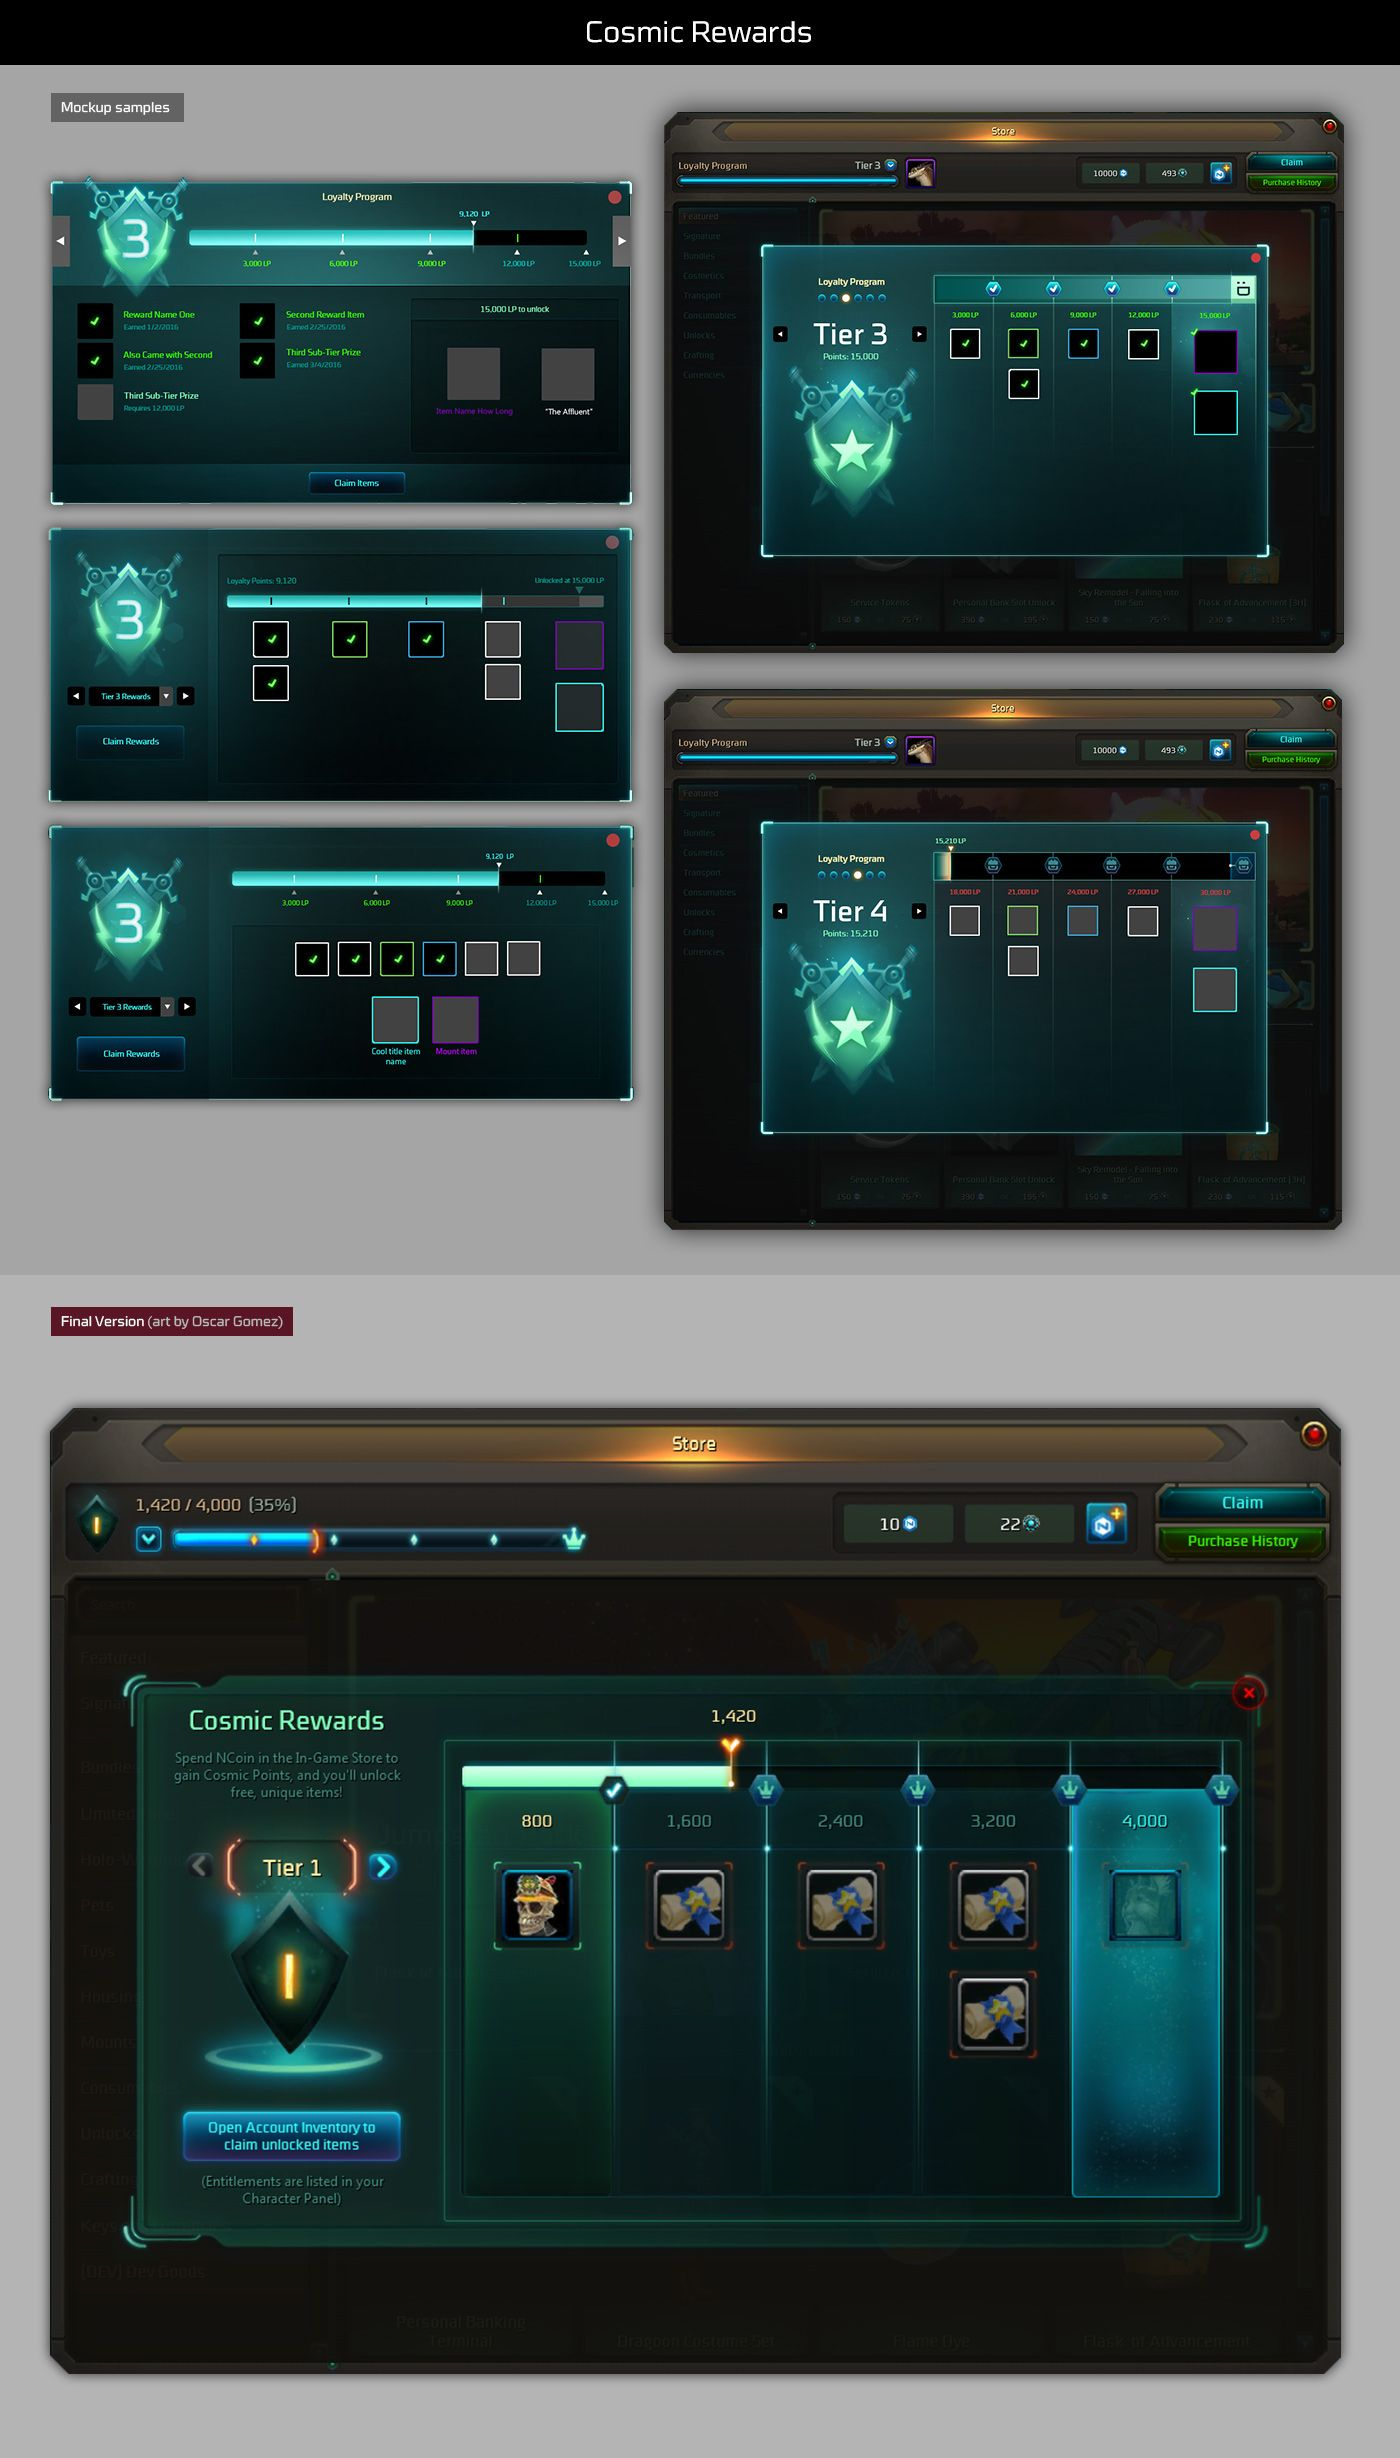 letter format for application%0A A Sample Of My UI Revisions And Redesigns Of Existing Wildstar  Ebd c       b  b a    ec ccd b d